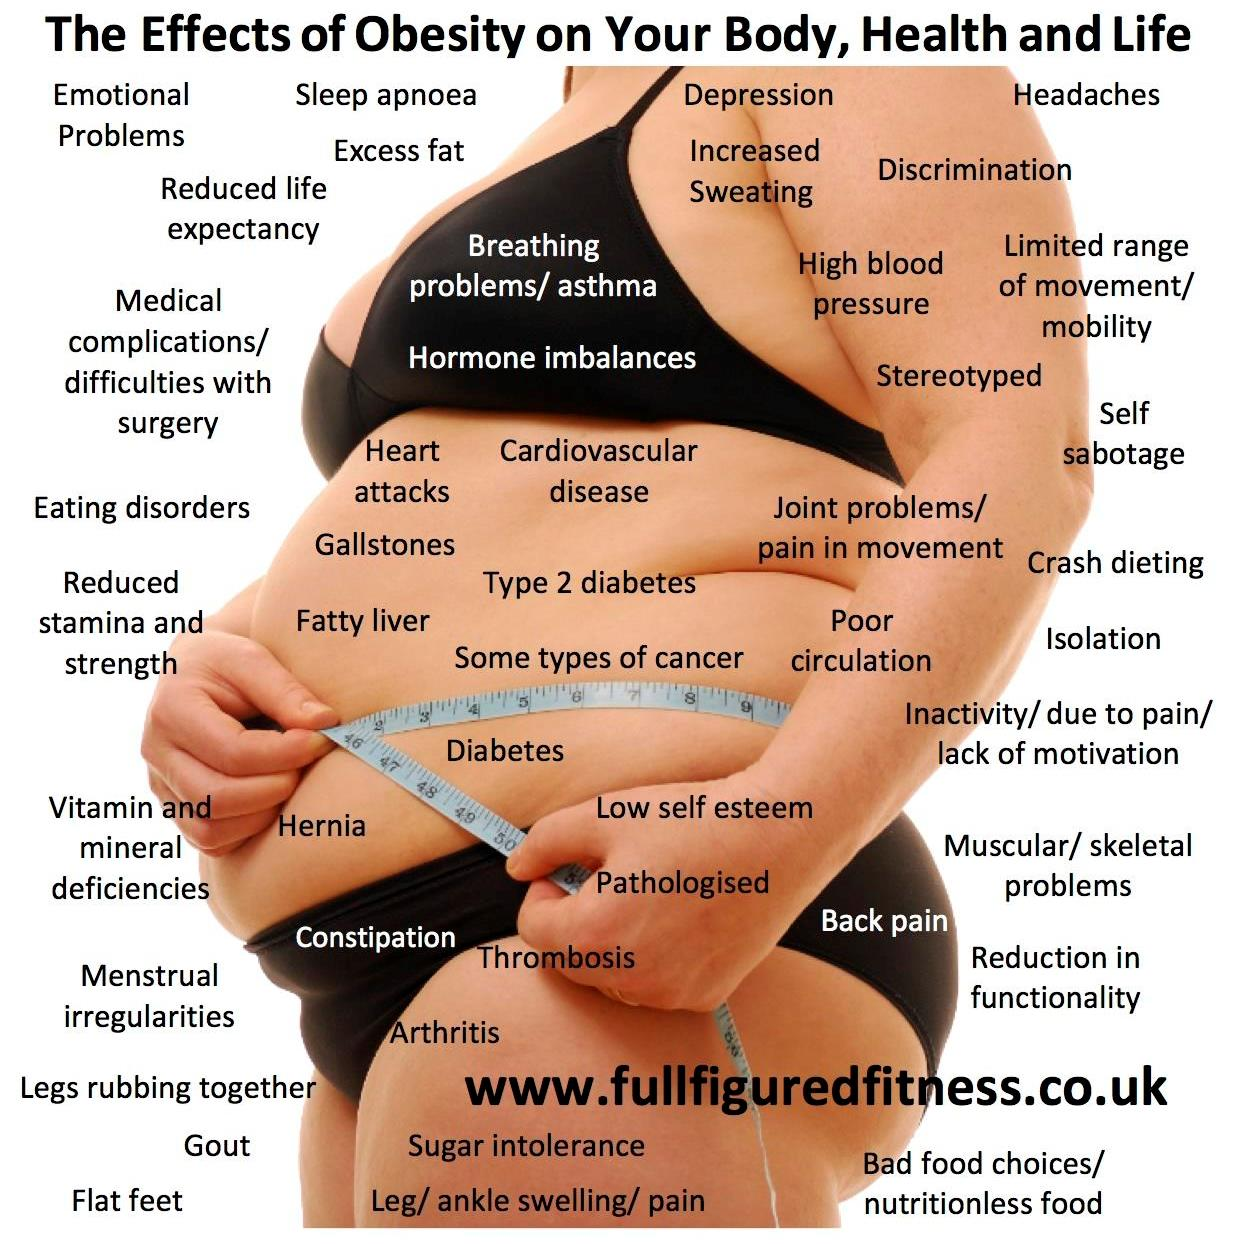 The possible effects of obesity on your body, health and life